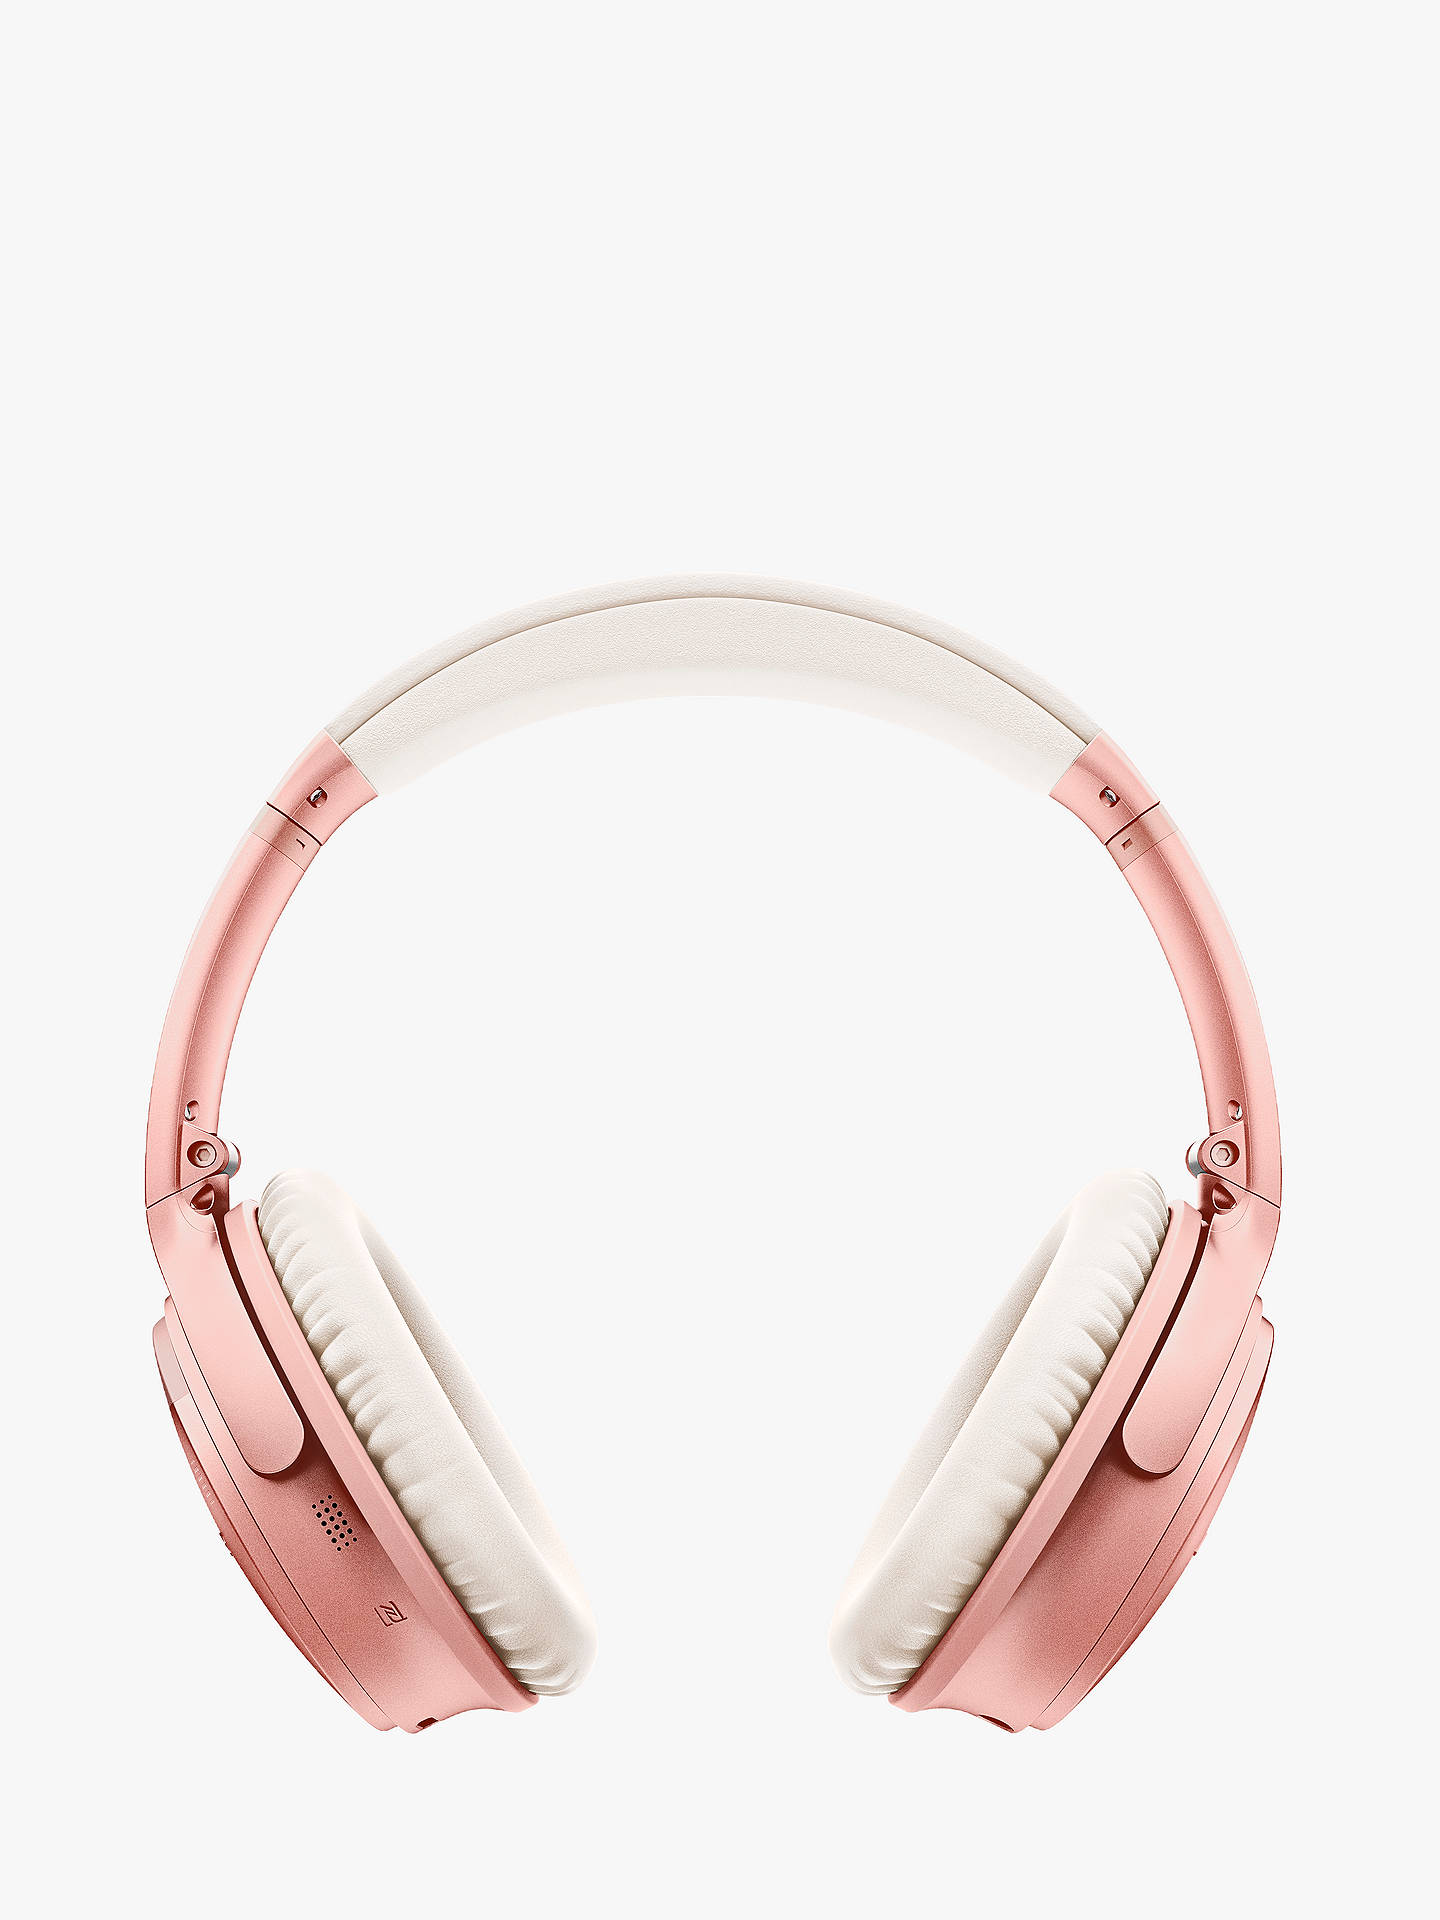 Music Fast Deliver Echos Head Phone Rose Gold Factory Direct Selling Price